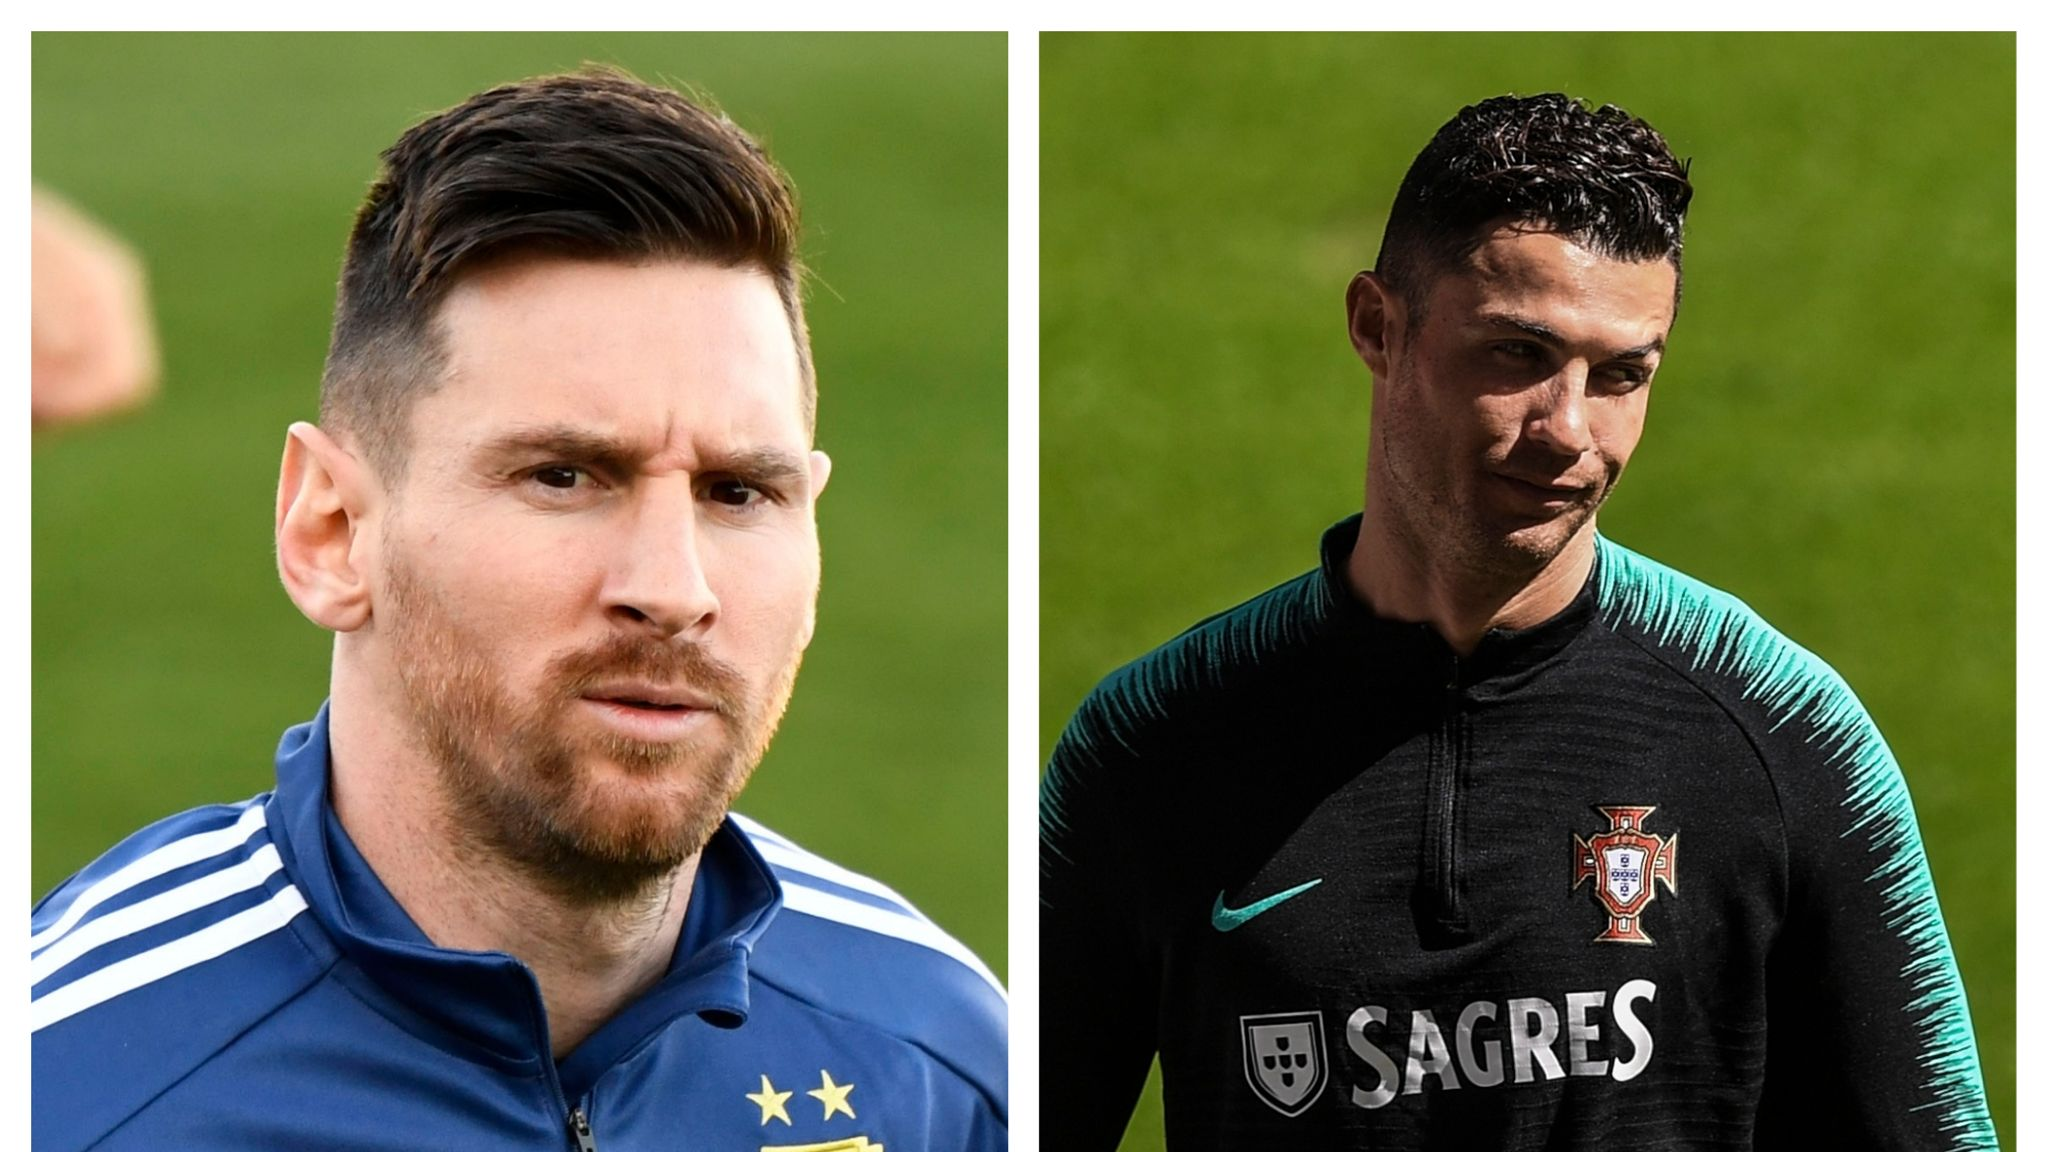 a7a23e5eba4 Lionel Messi and Cristiano Ronaldo return to international scene for first  time since 2018 World Cup